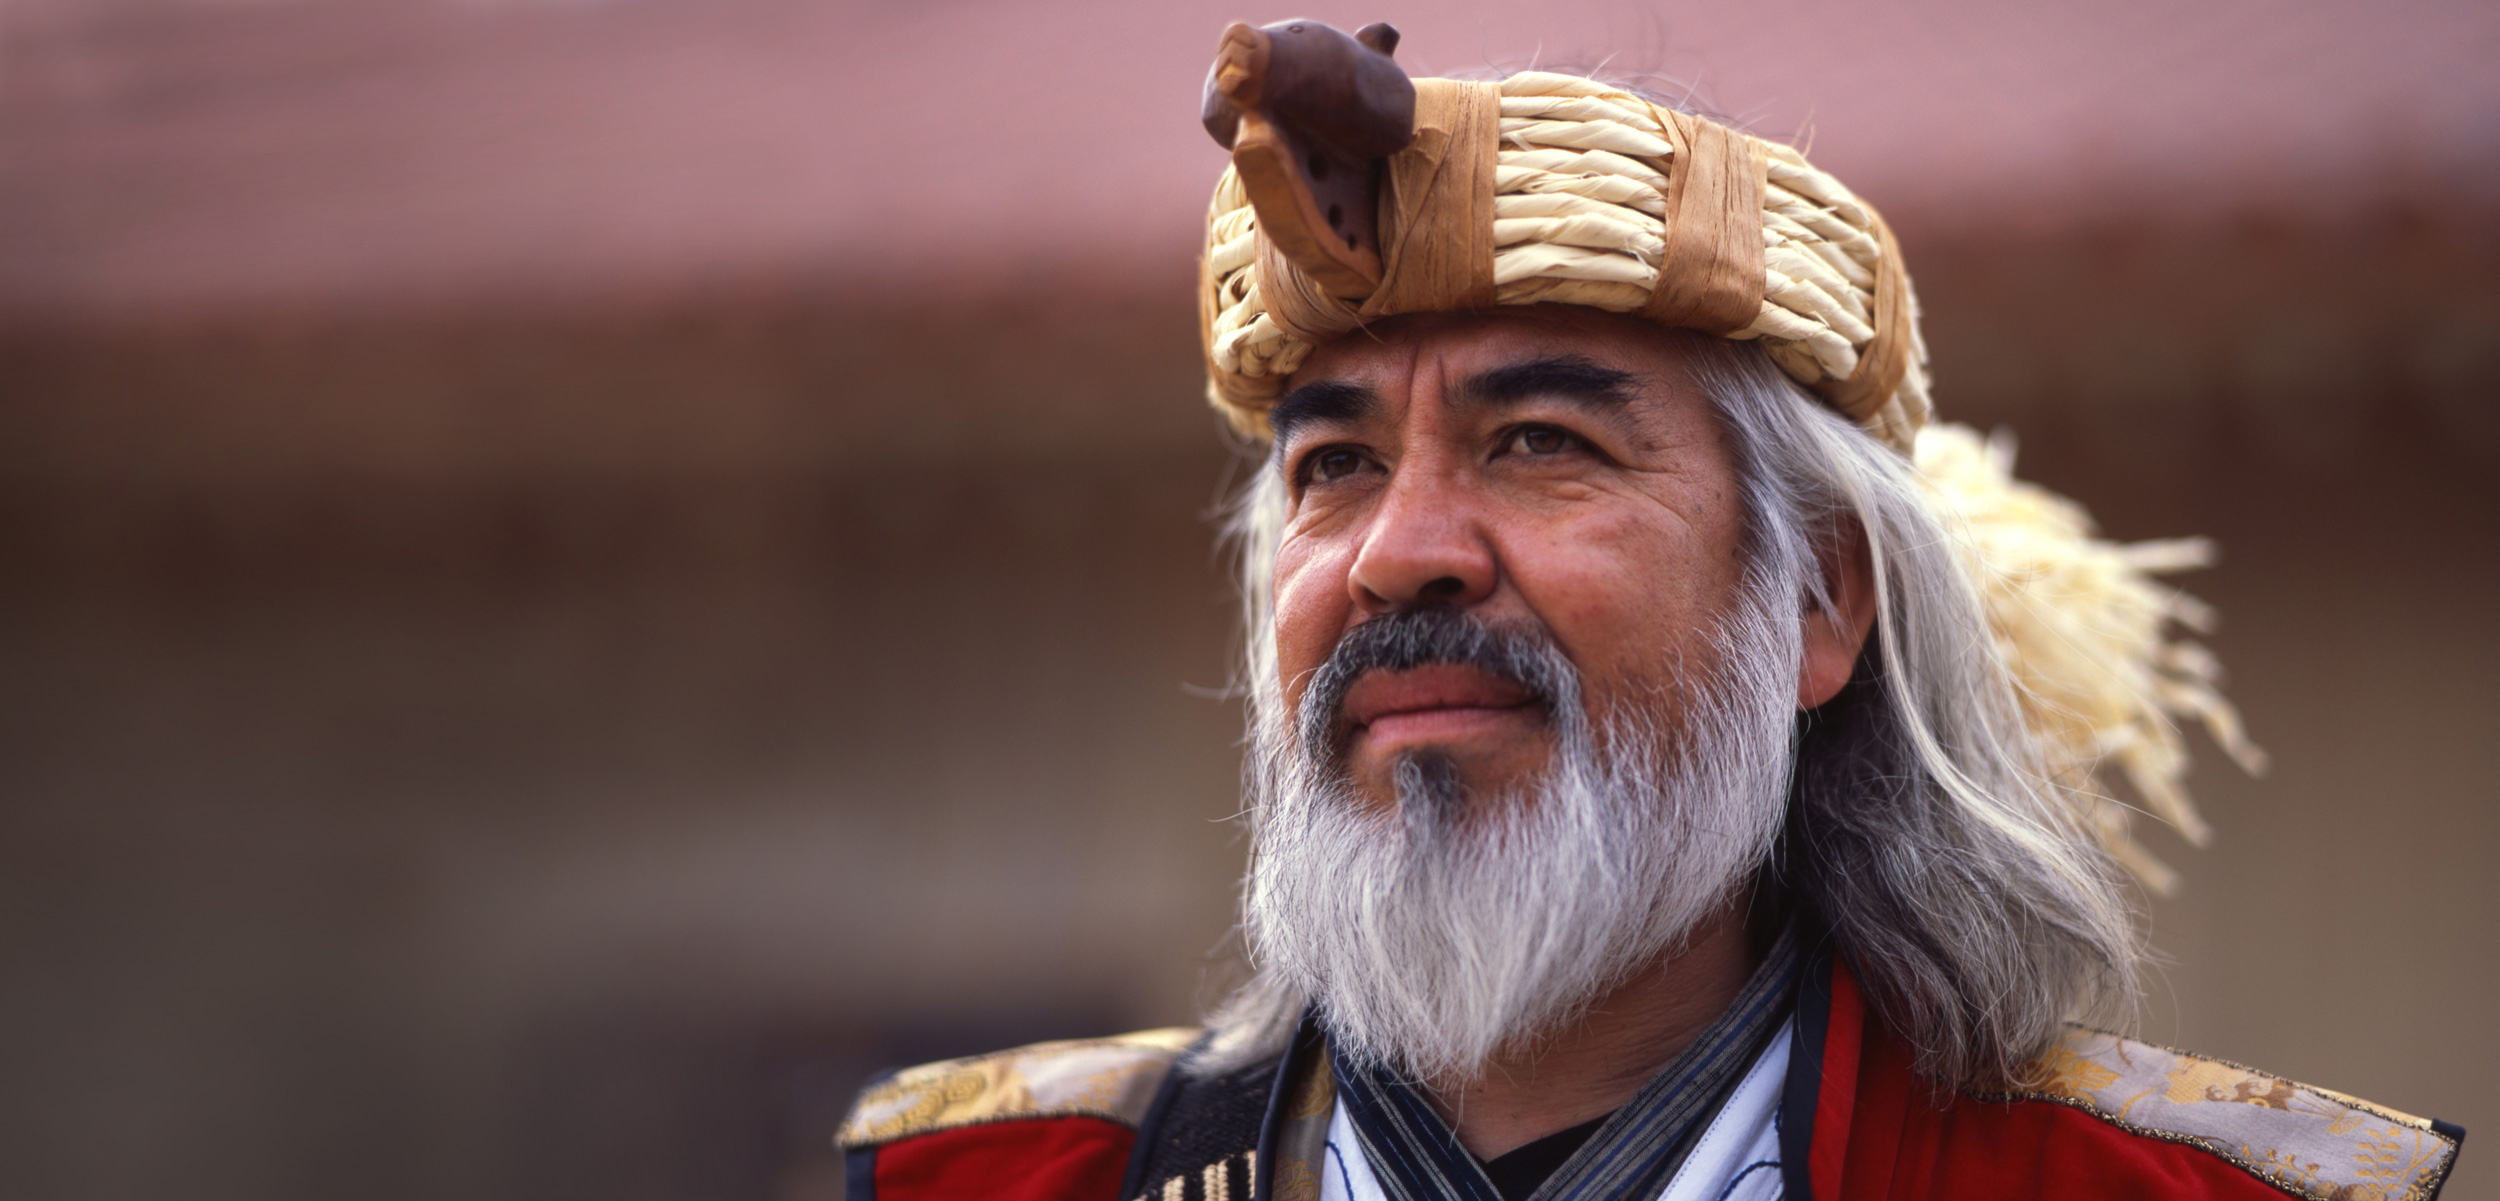 The Ainu, the Indigenous people of Japan, have fought Japanese domination for centuries. As this century unfolds, their efforts are finally paying off. Photo by Chris Willson/Alamy Stock Photo